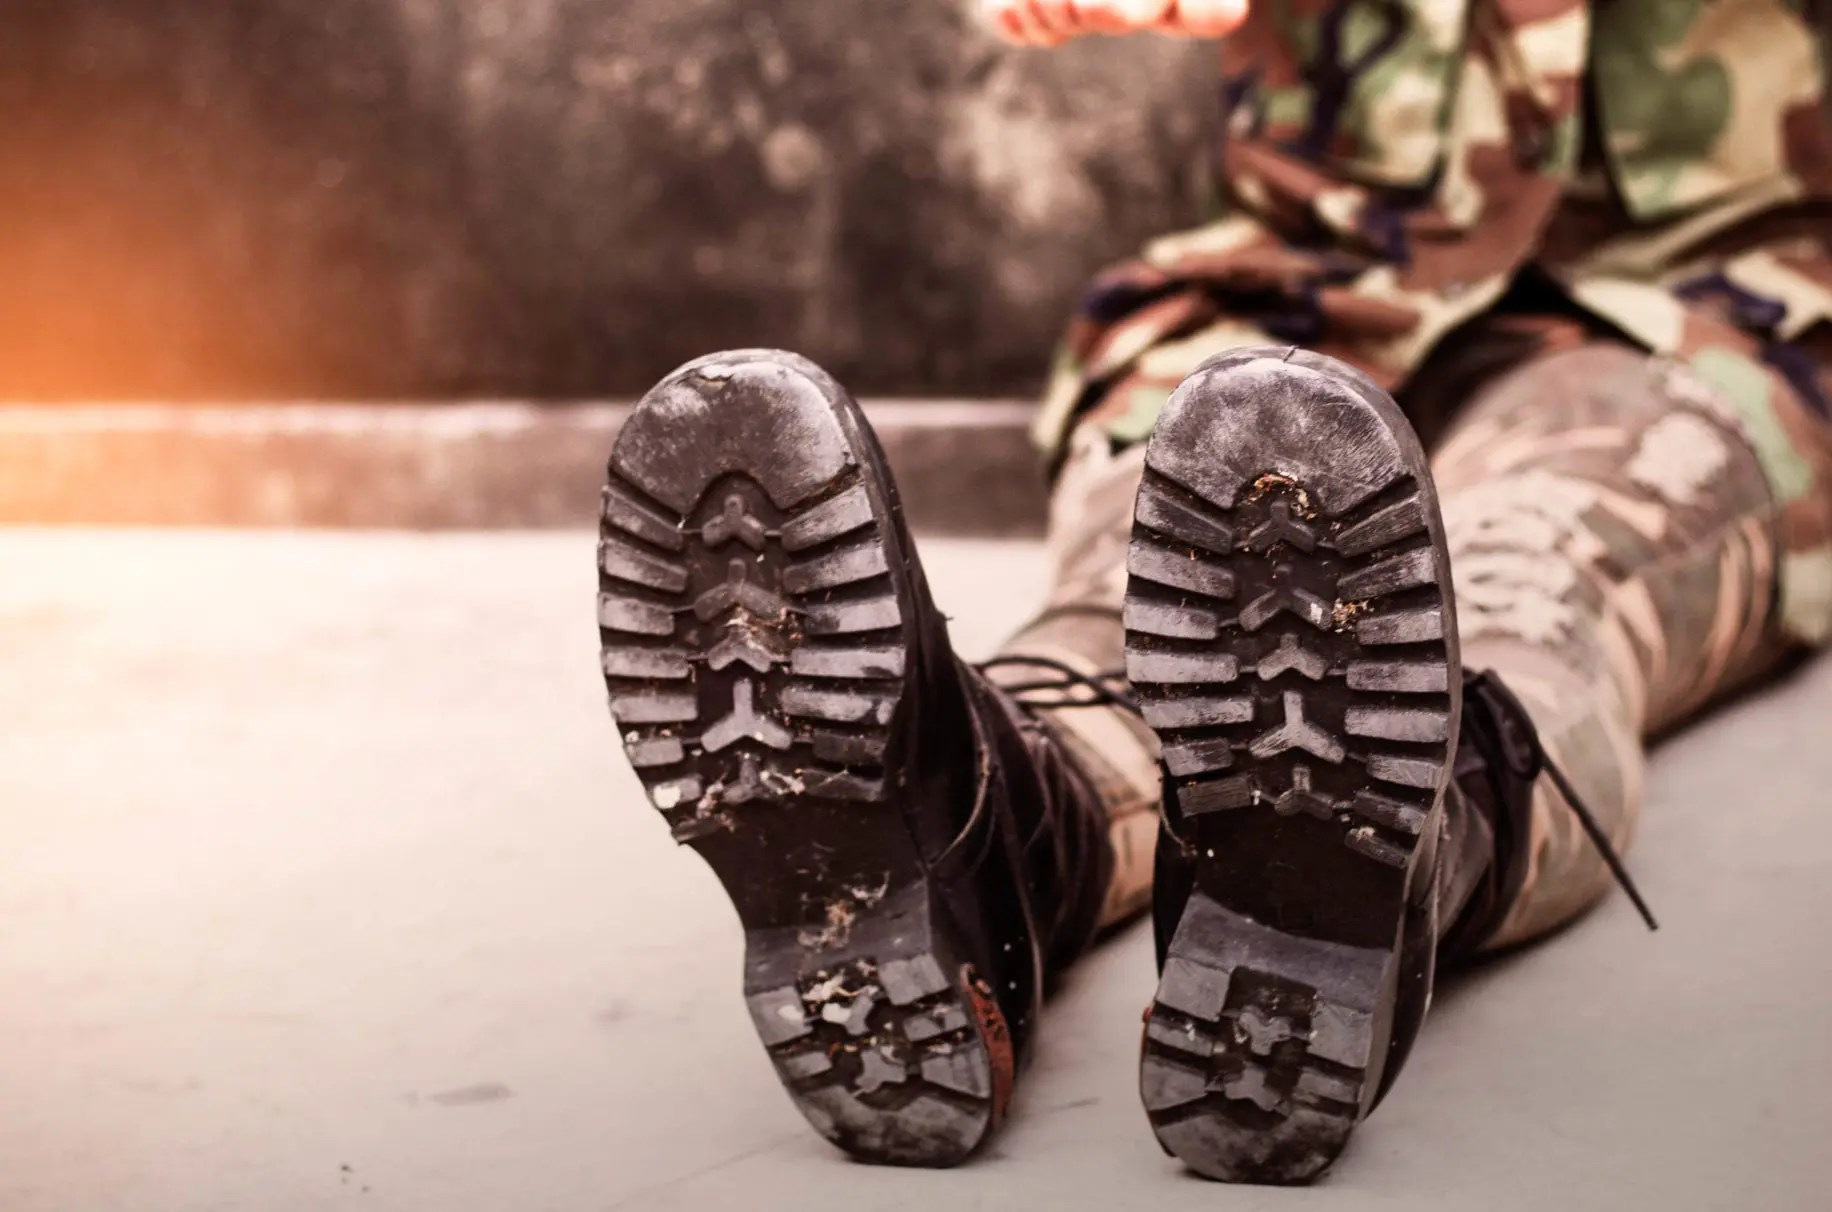 Strong Committed Relationships Can Buffer Military Suicides